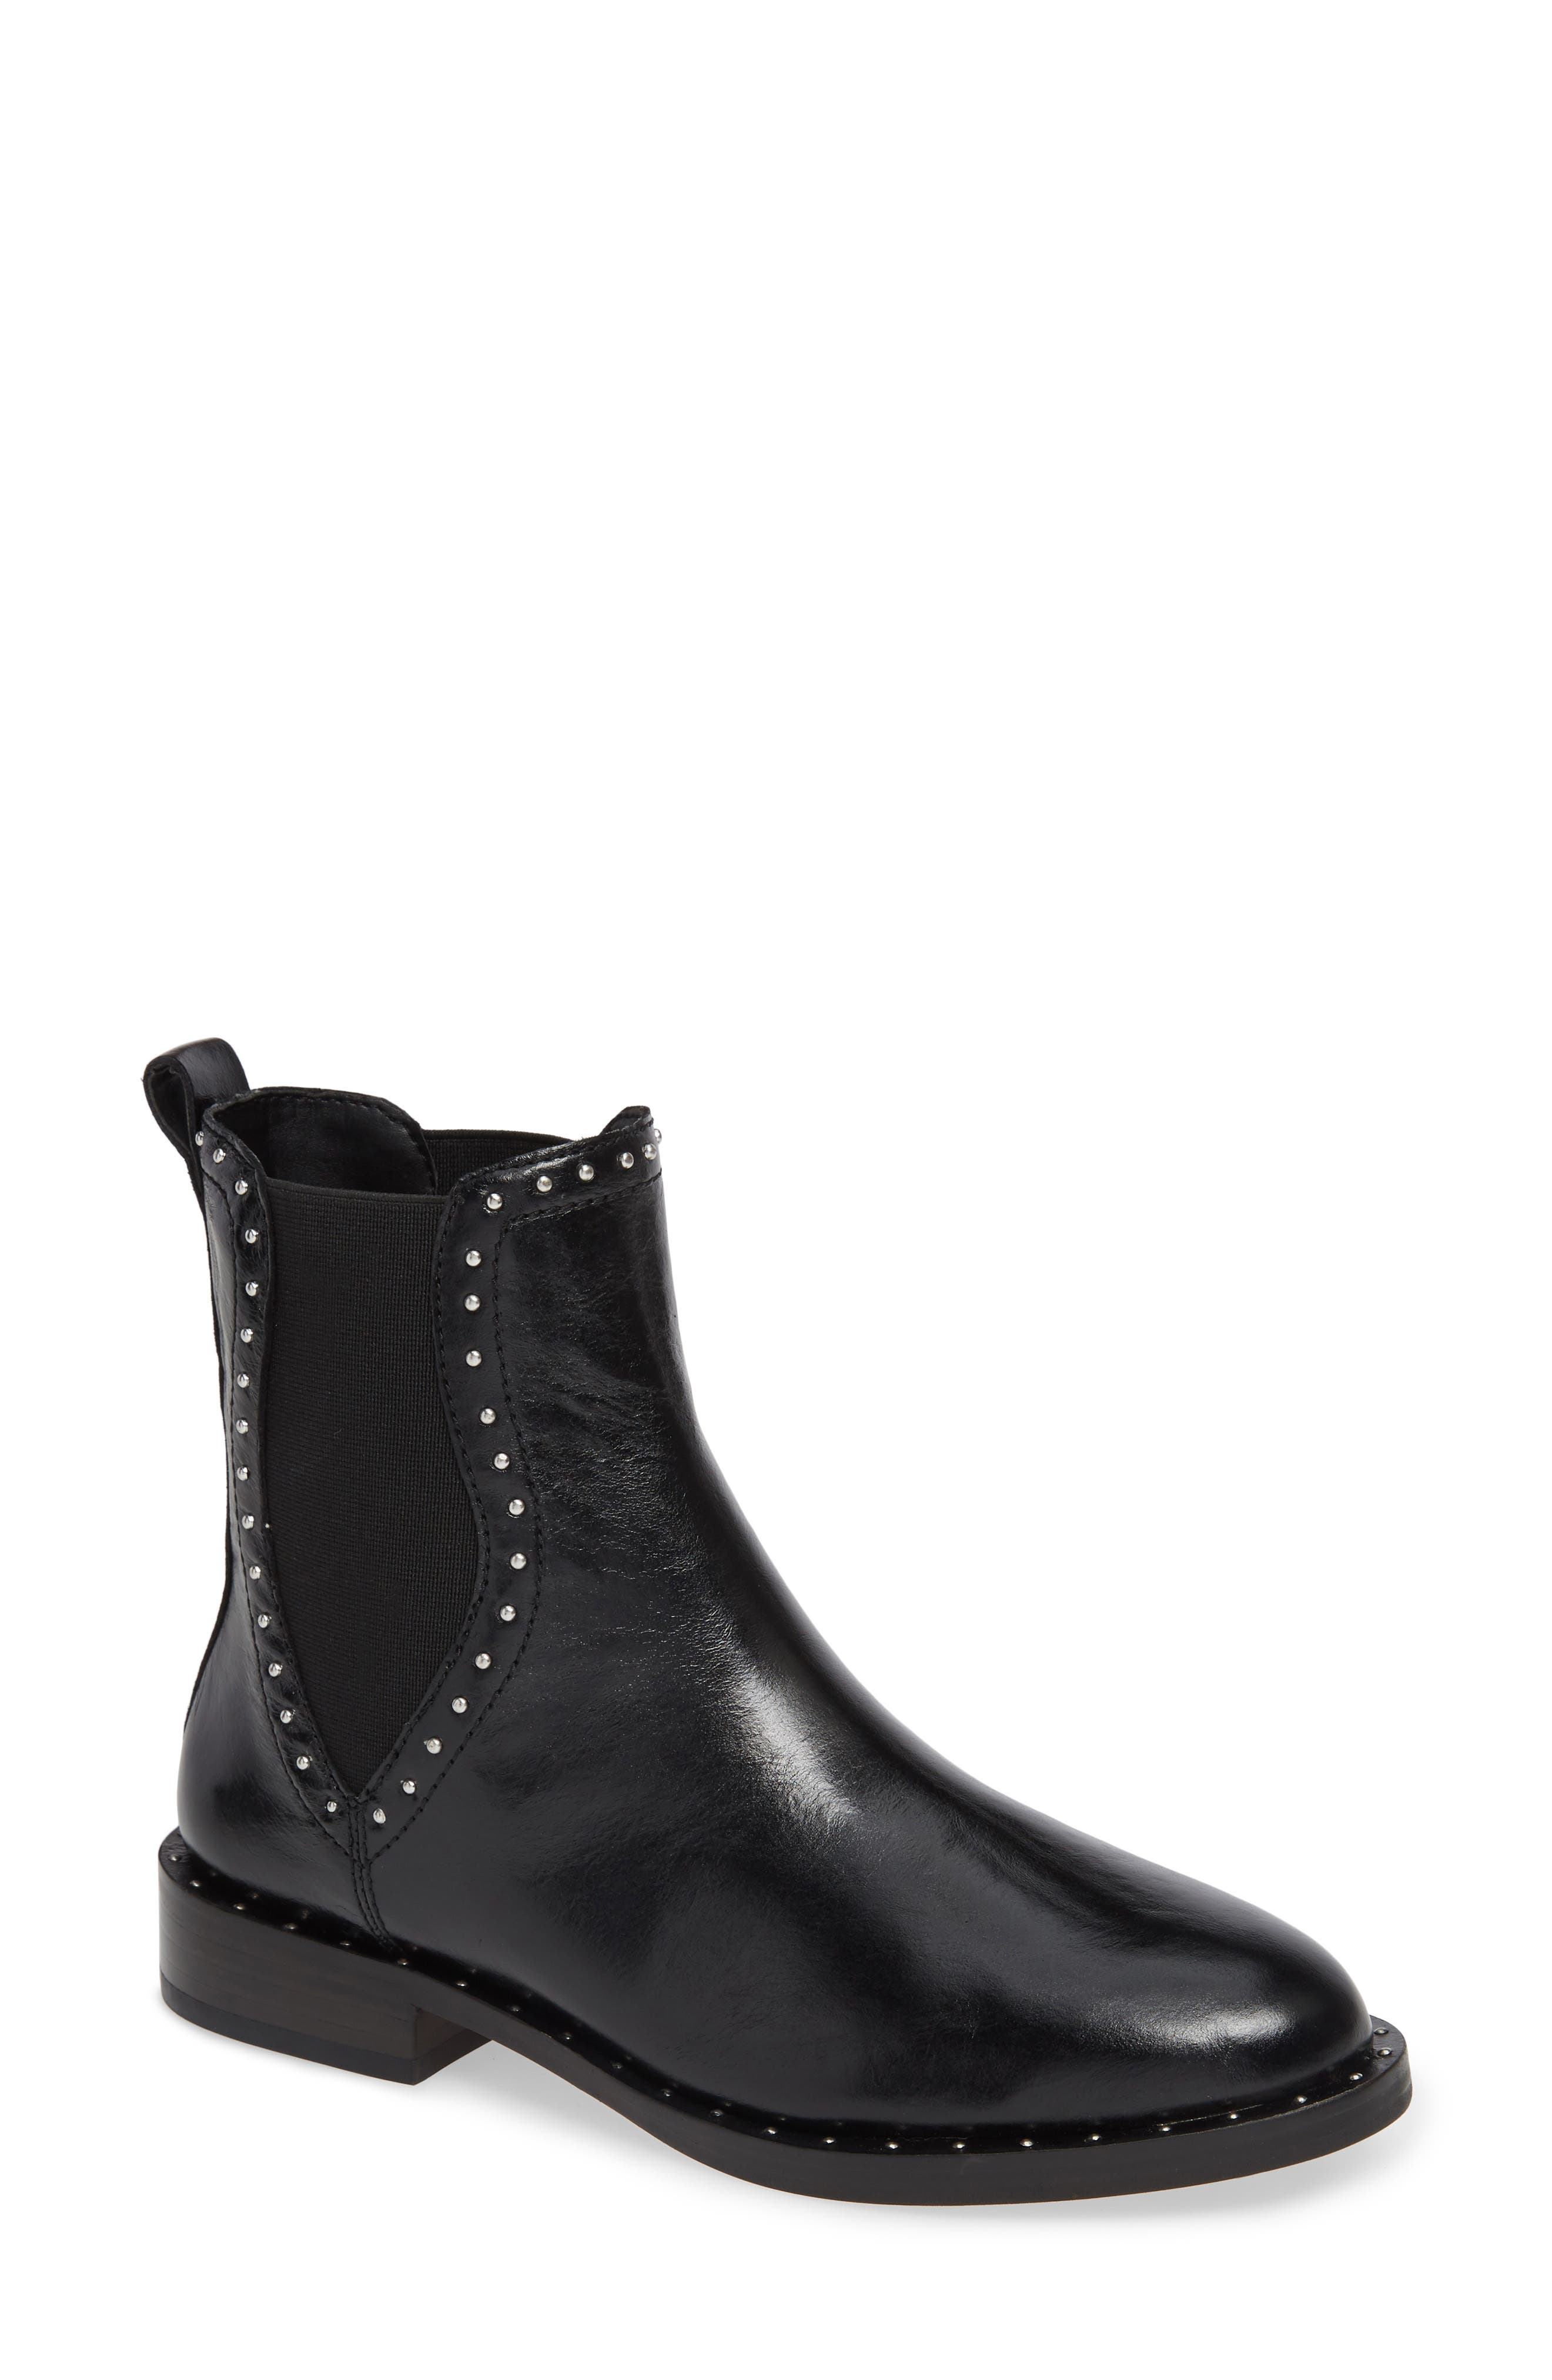 REBECCA MINKOFF Sabeen Chelsea Bootie, Main, color, BLACK LEATHER